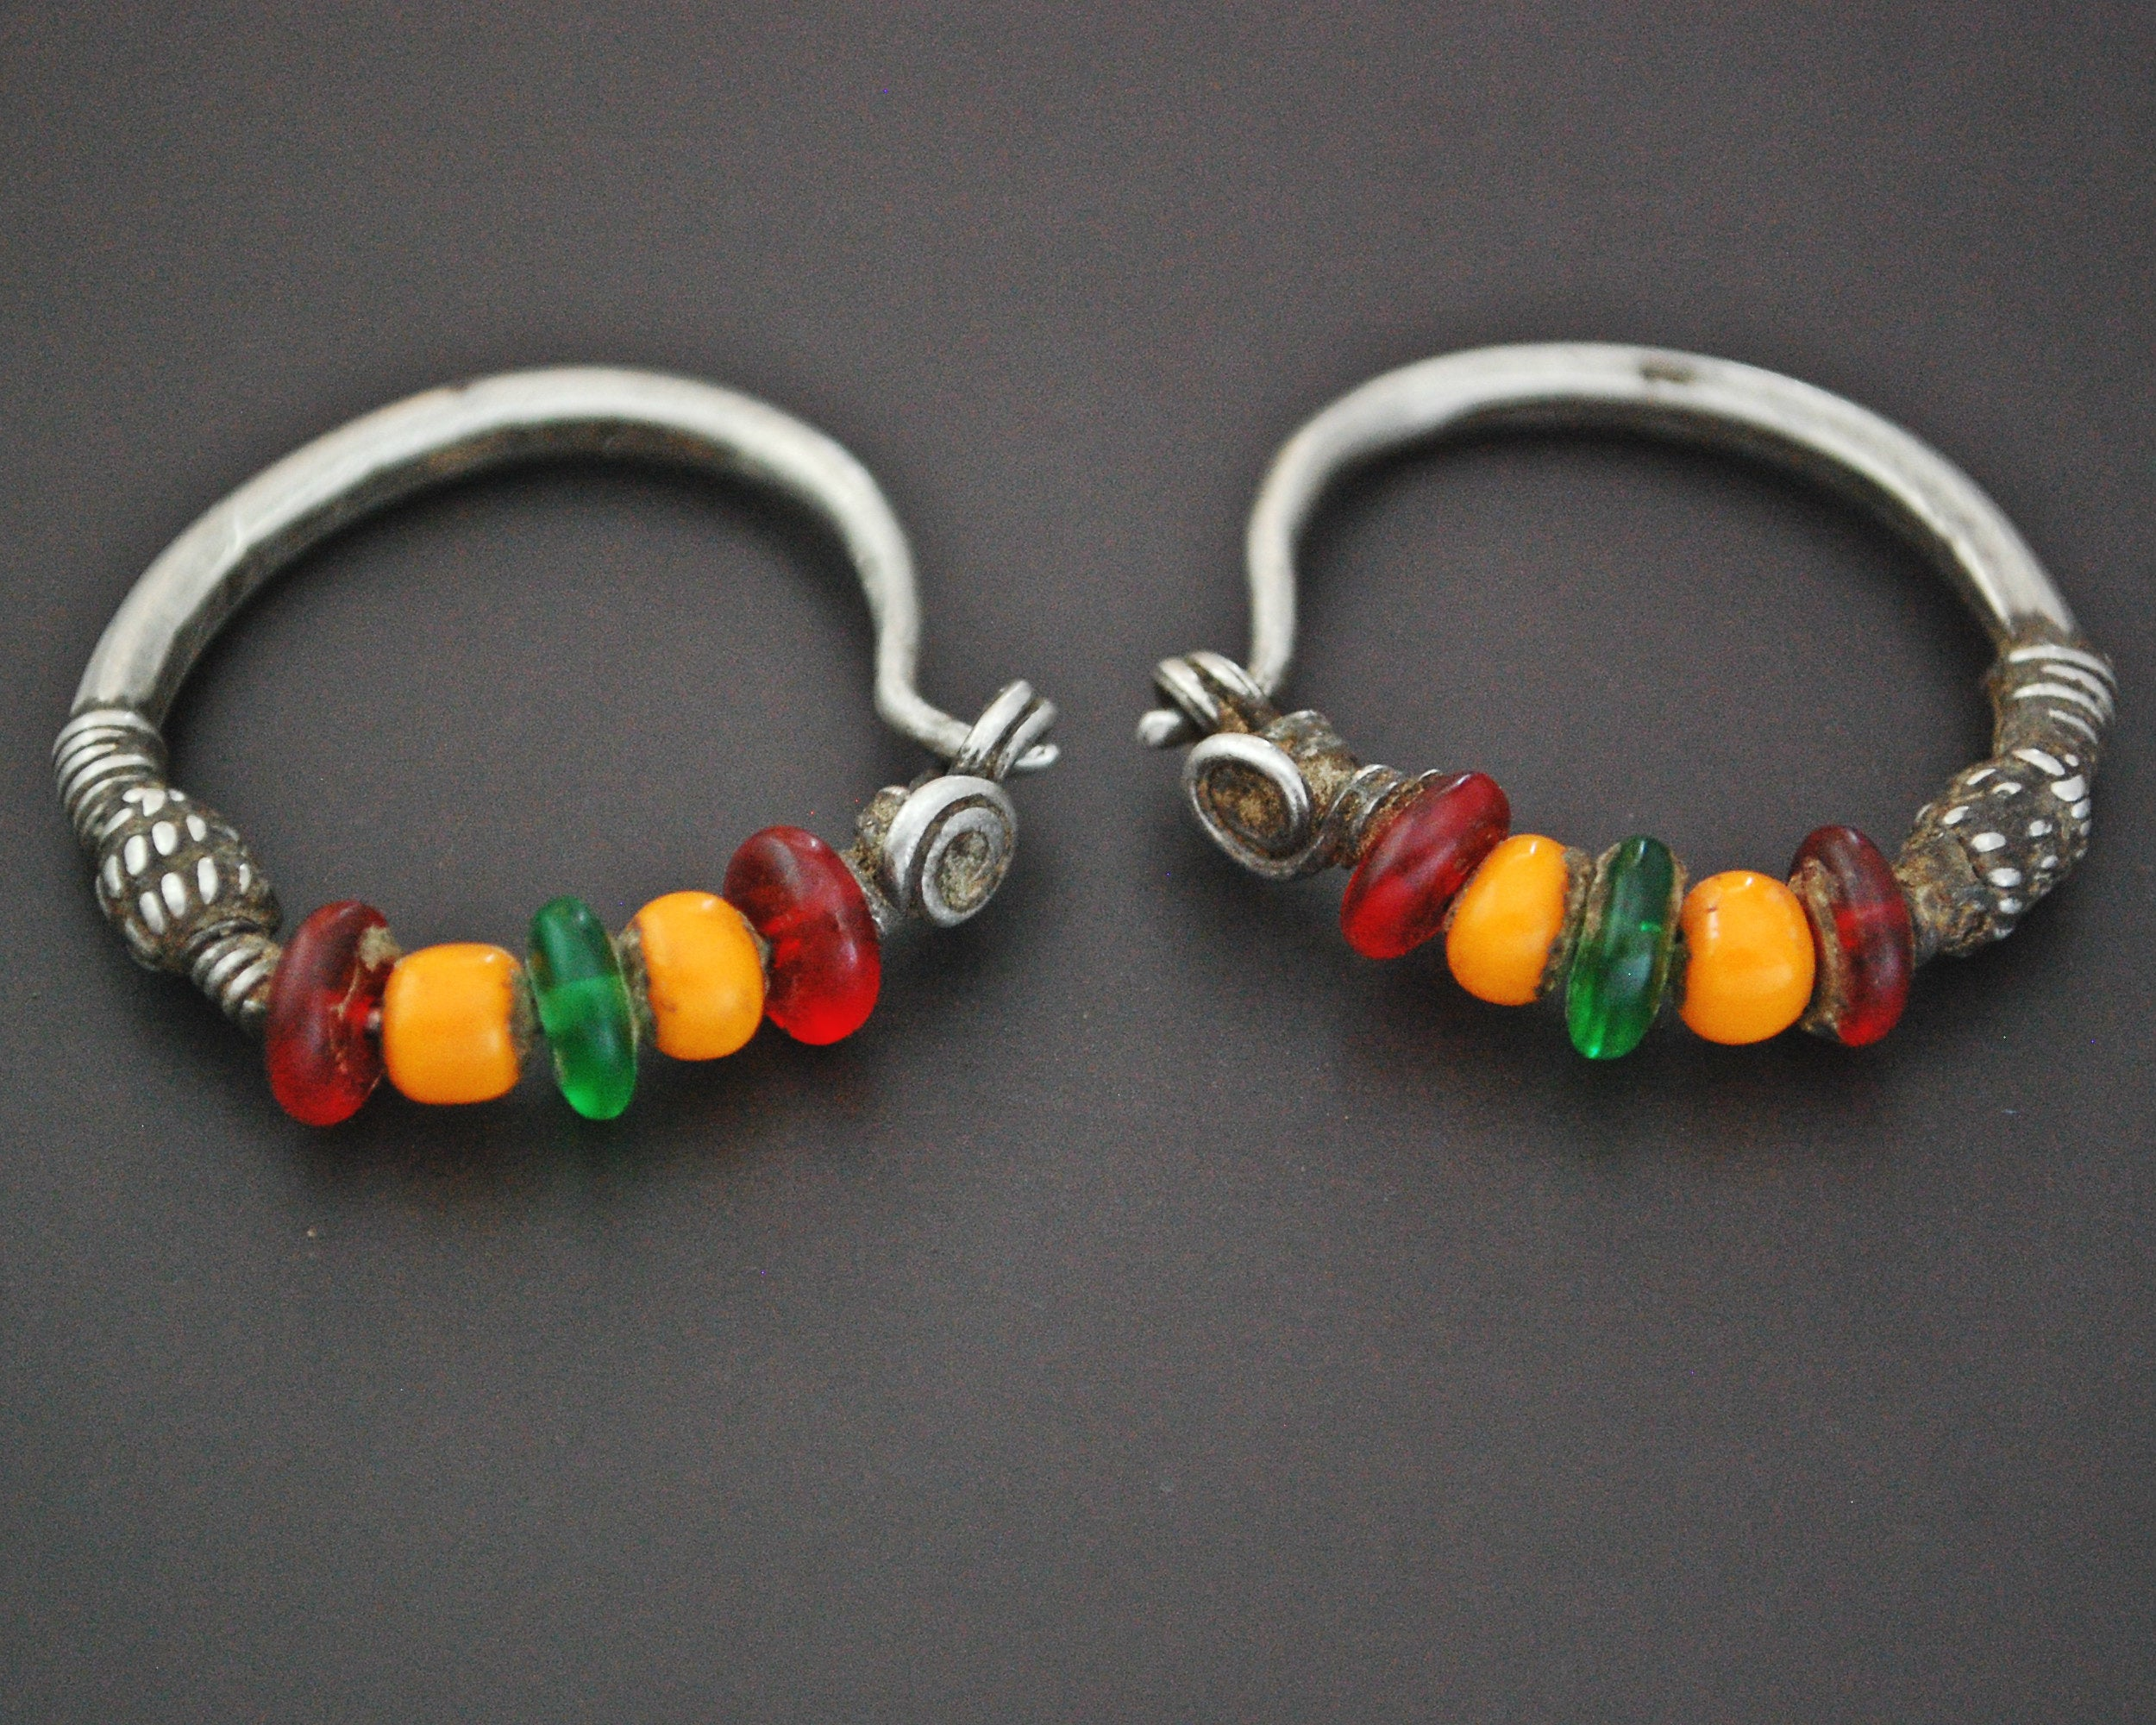 Tribal Indian Hoop Earrings with Colorful Beads